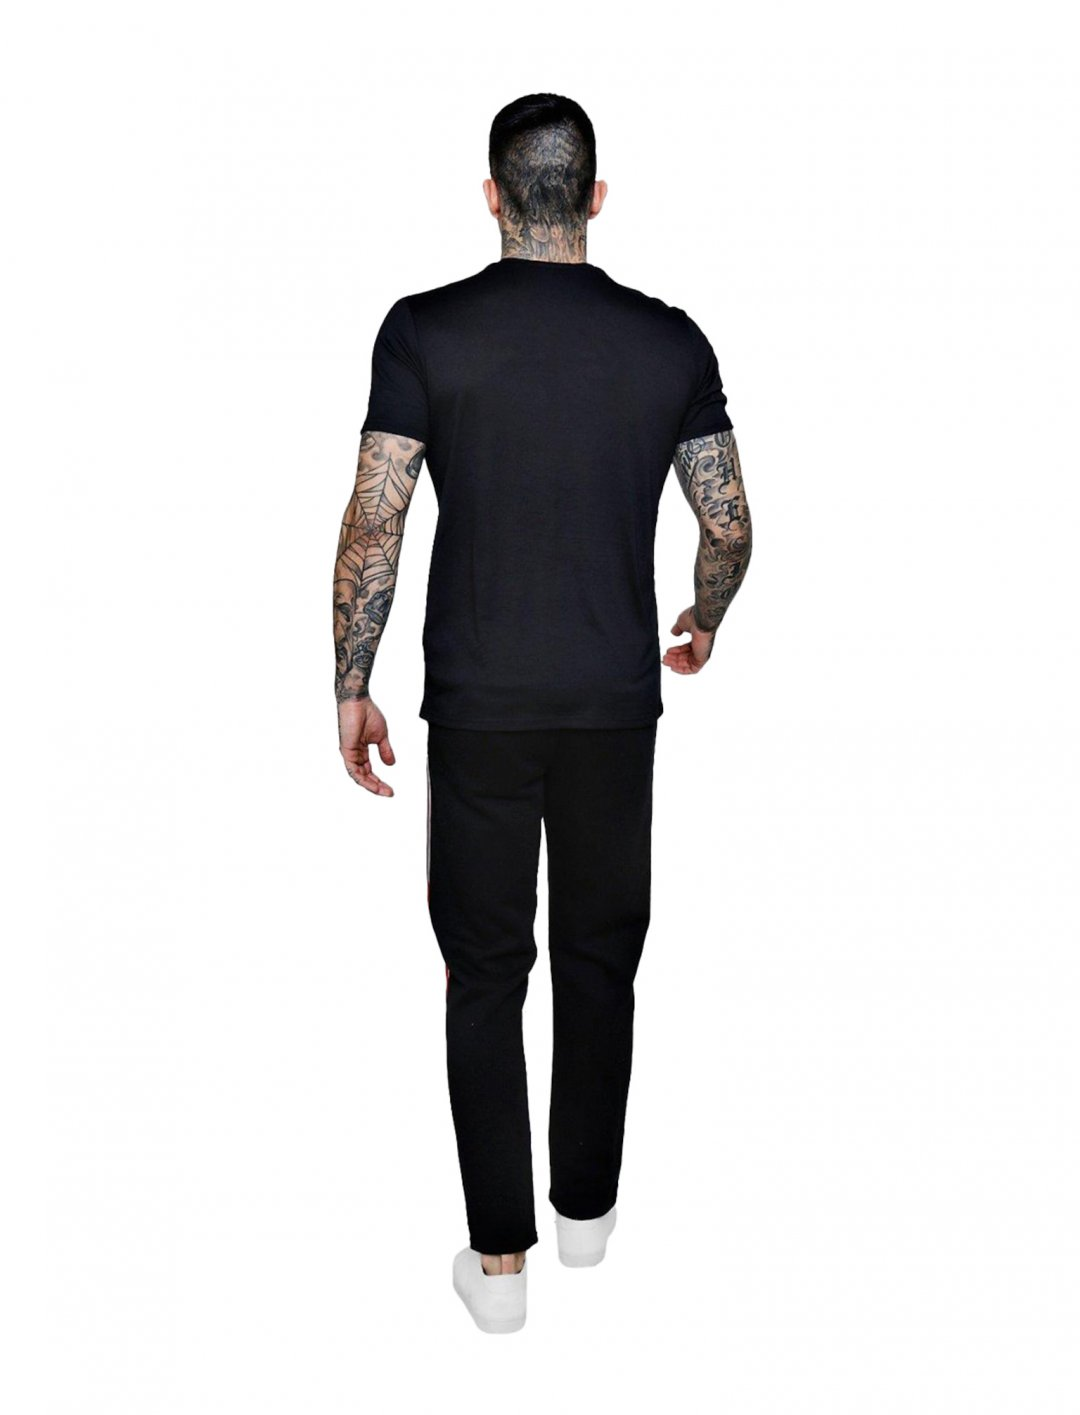 "BoohooMAN Badge T-Shirt {""id"":5,""product_section_id"":1,""name"":""Clothing"",""order"":5} BoohooMAN"